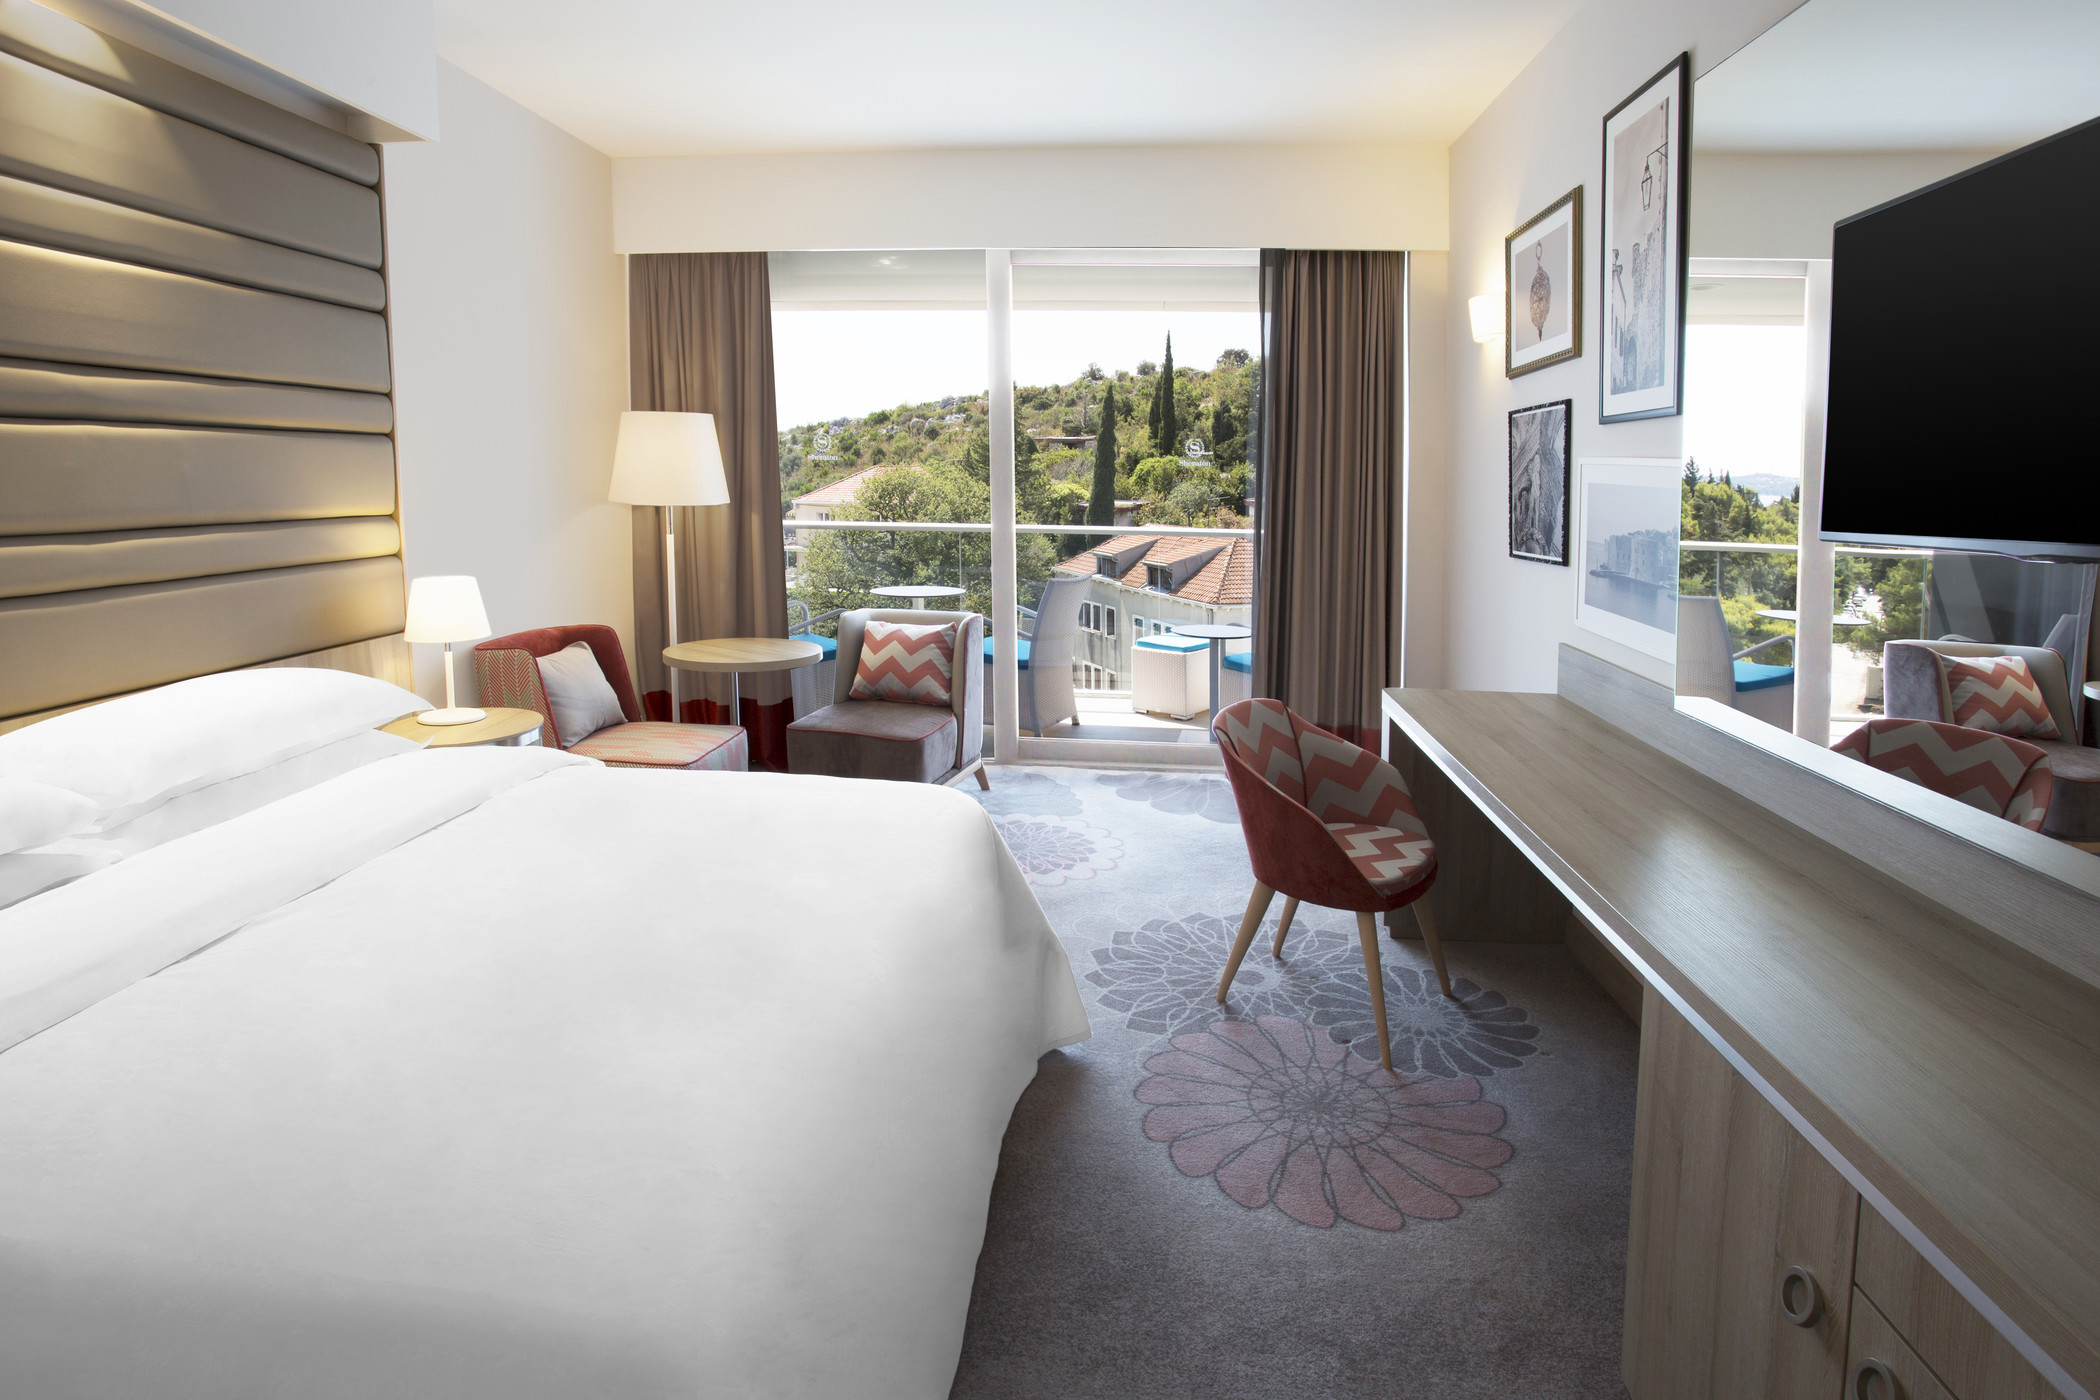 Starwood Hotels Resorts Expands Global Footprint With Debut Of